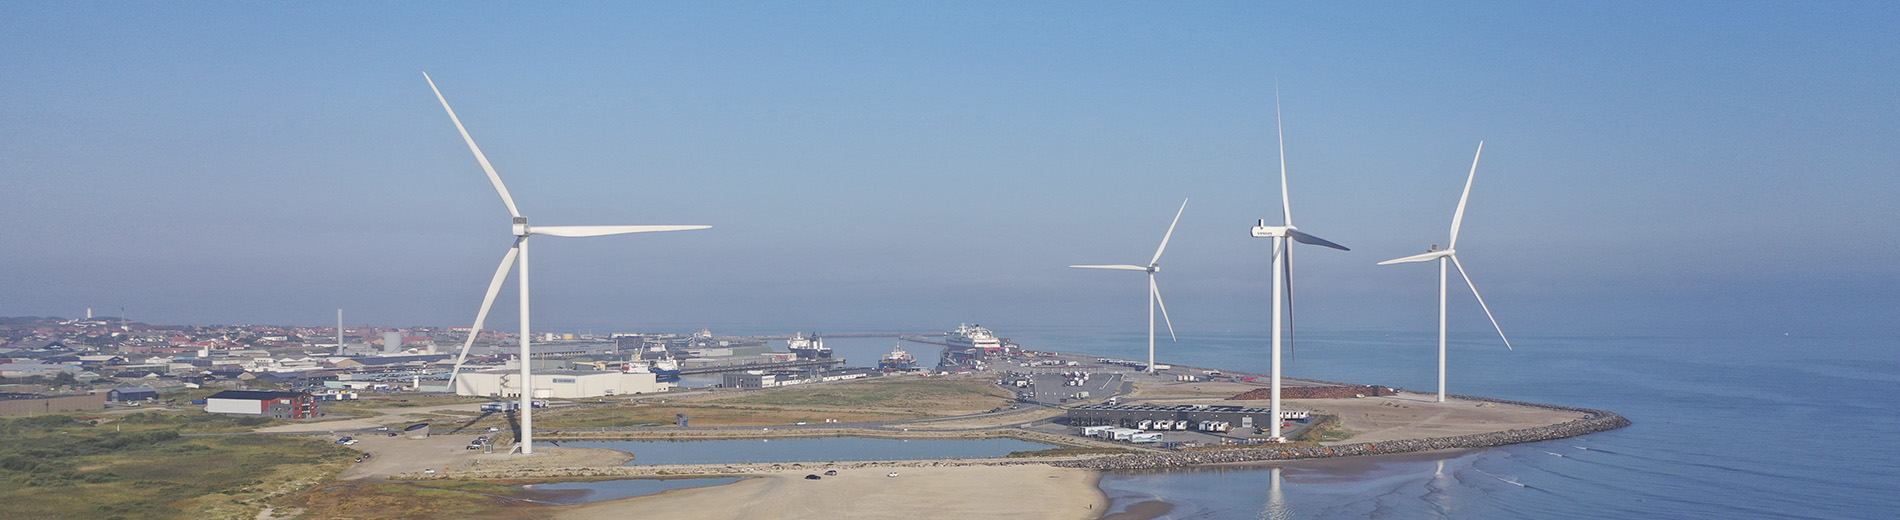 The four Vestas wind turbines at the Port of Hirtshals